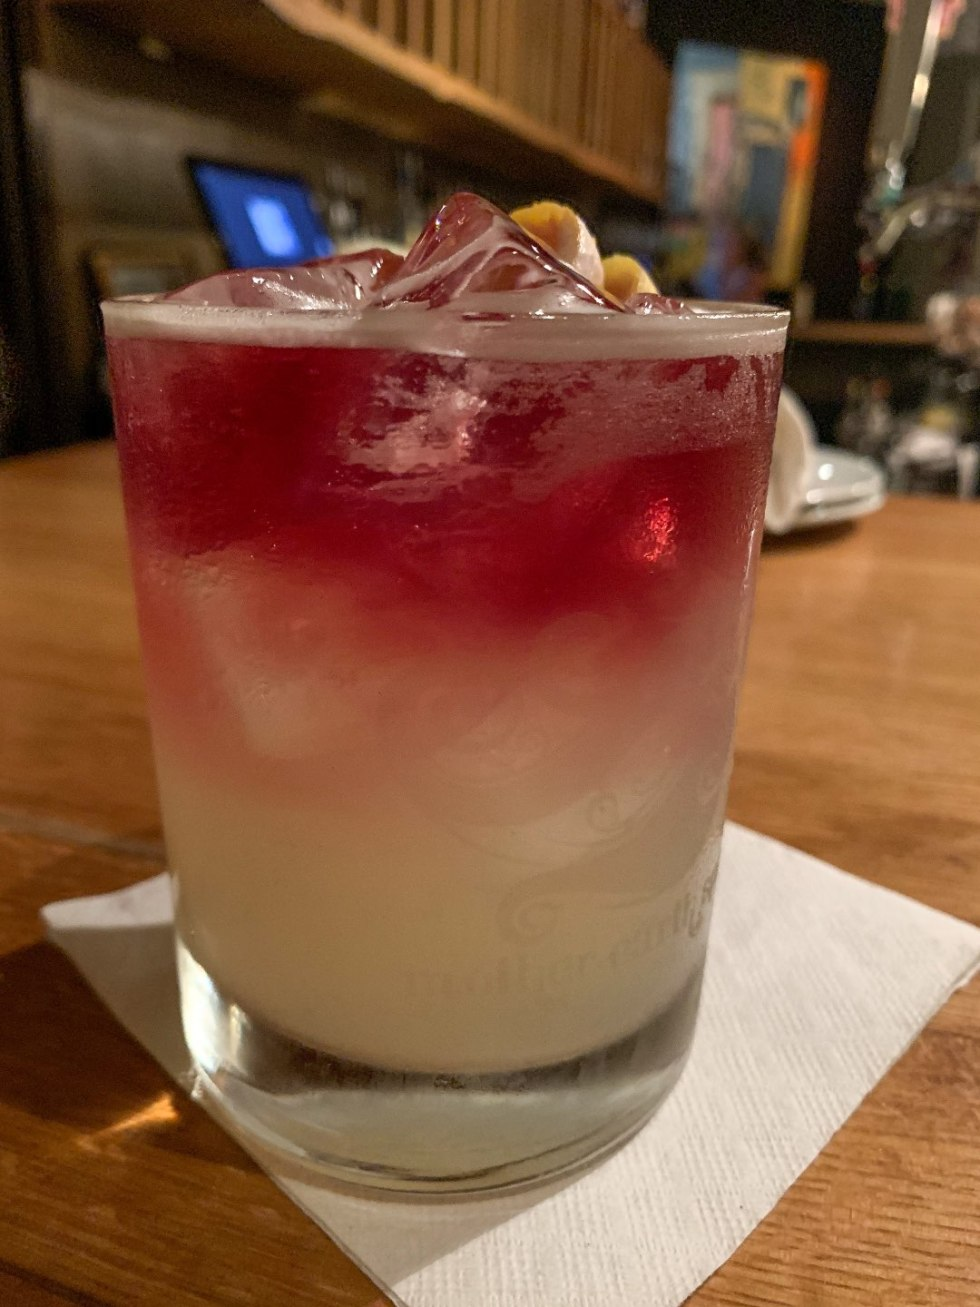 Top 5 Best Destination Restaurants in Eastern NC you Need to Try - I'm Fixin' To - @mbg0112 | Top 5 Best Destination Restaurants in Eastern NC you Need to Try by popular North Carolina blog, I'm Fixin' To: image of a cocktail drink at the Chef and the Farmer.